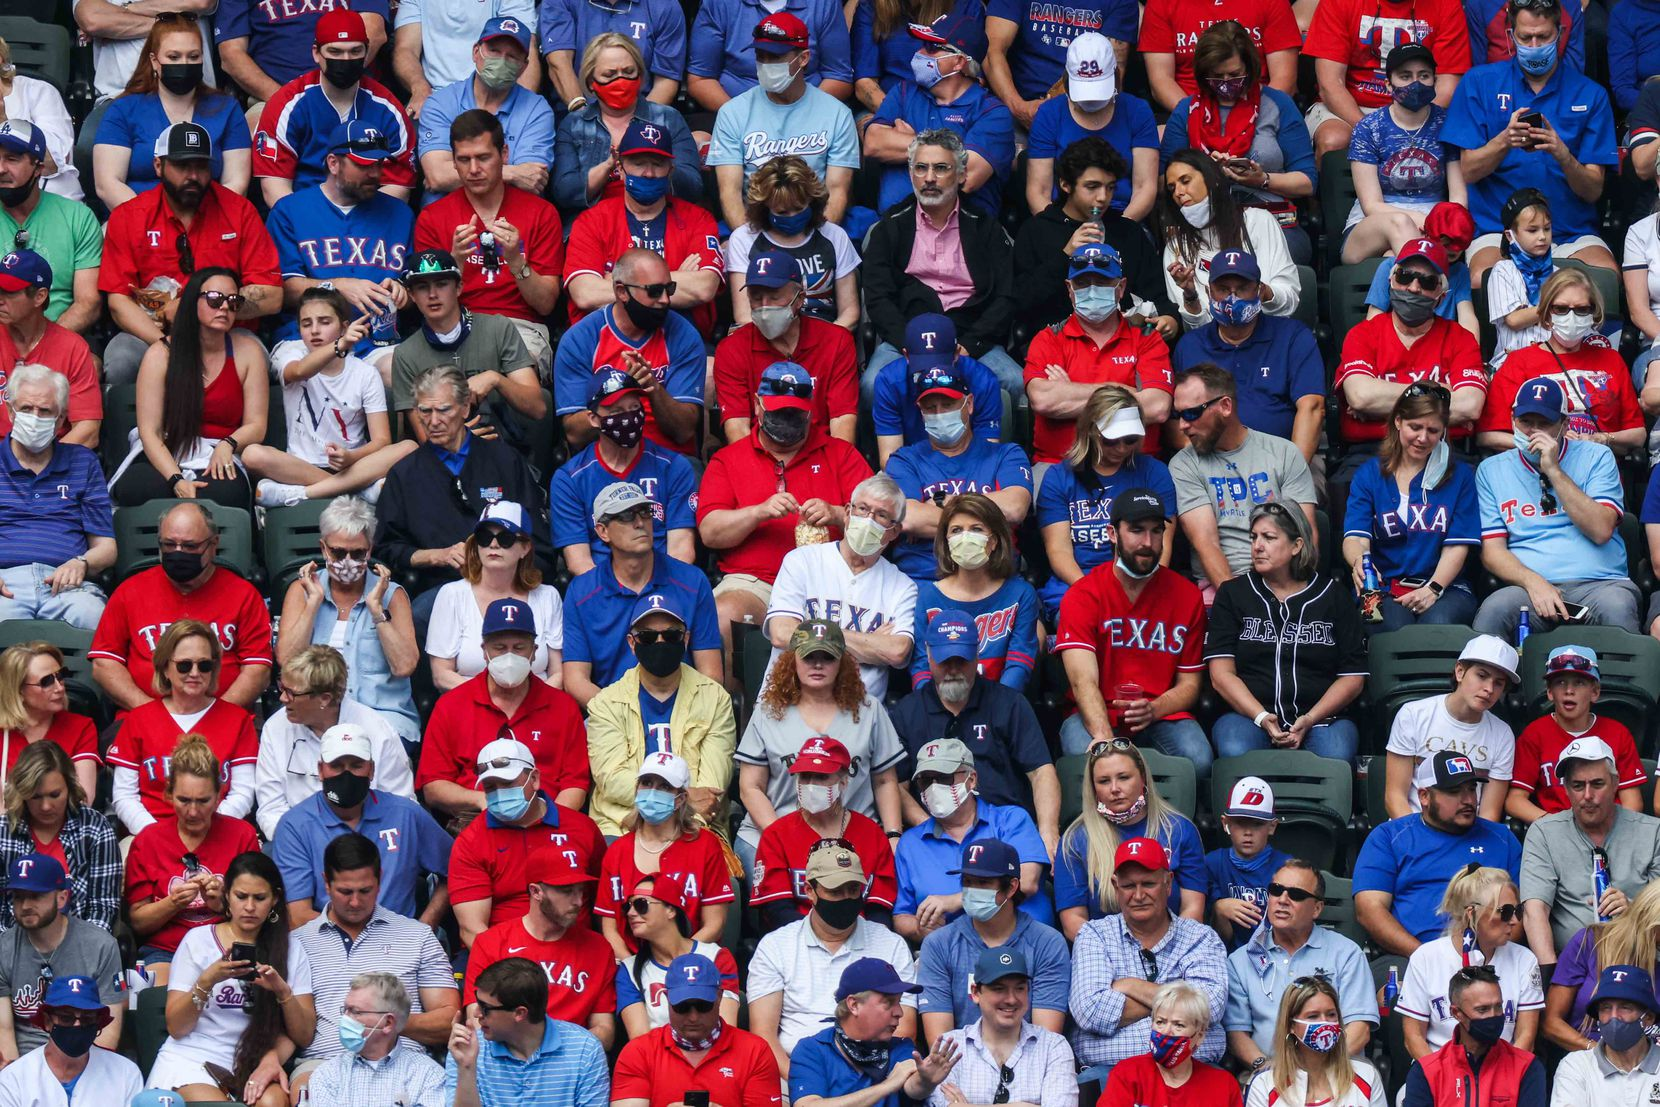 Fans watch the game between Texas Rangers and Toronto Blue Jays at the Globe Life Field during opening day in Arlington, Texas on Monday, April 5, 2021. (Lola Gomez/The Dallas Morning News)